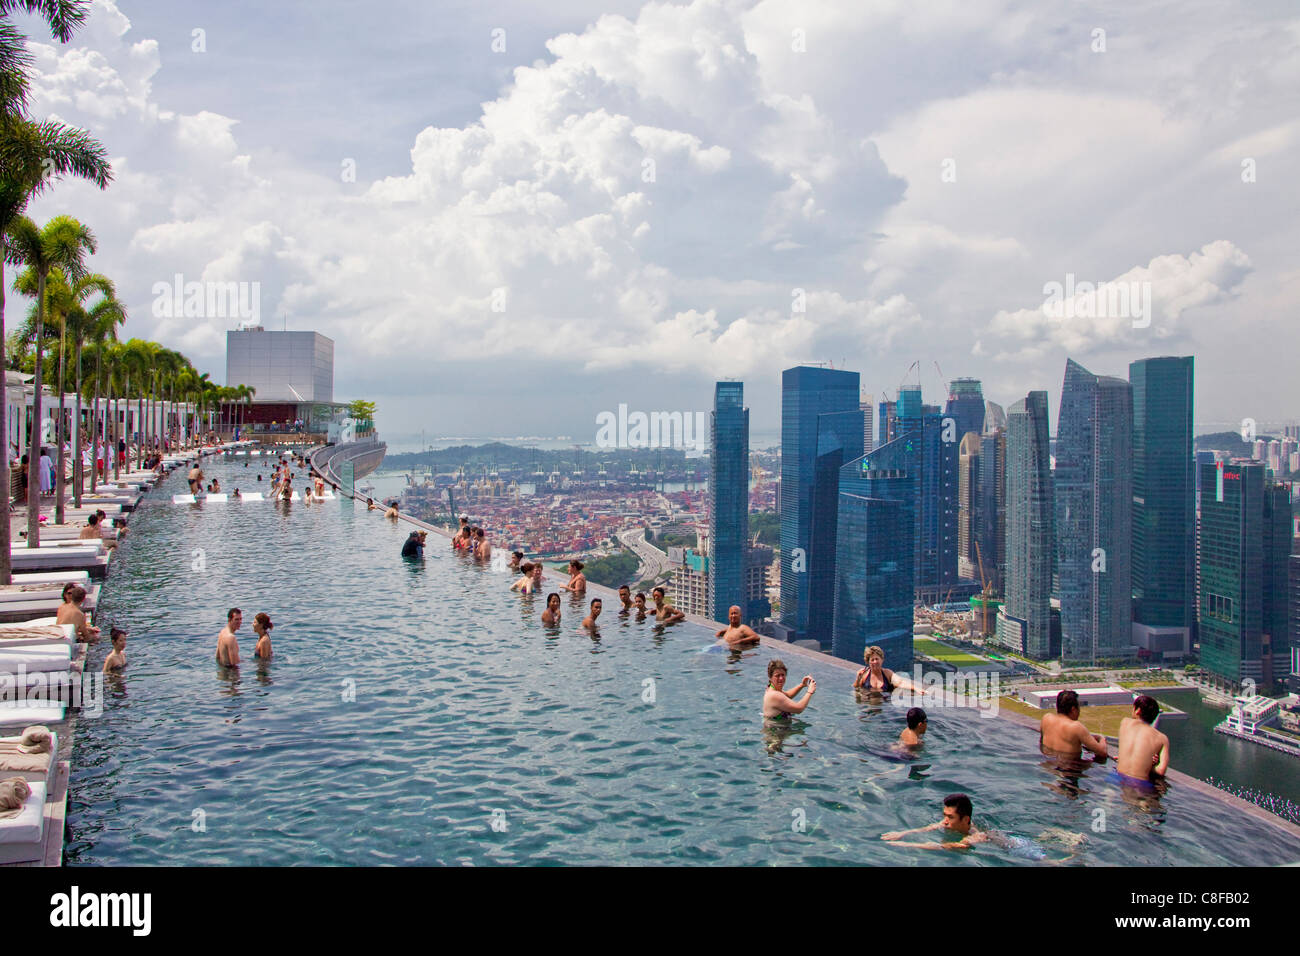 Singapore asia marina bay hotel hotel pool look glance at stock photo royalty free image for Hotel with swimming pool on roof singapore